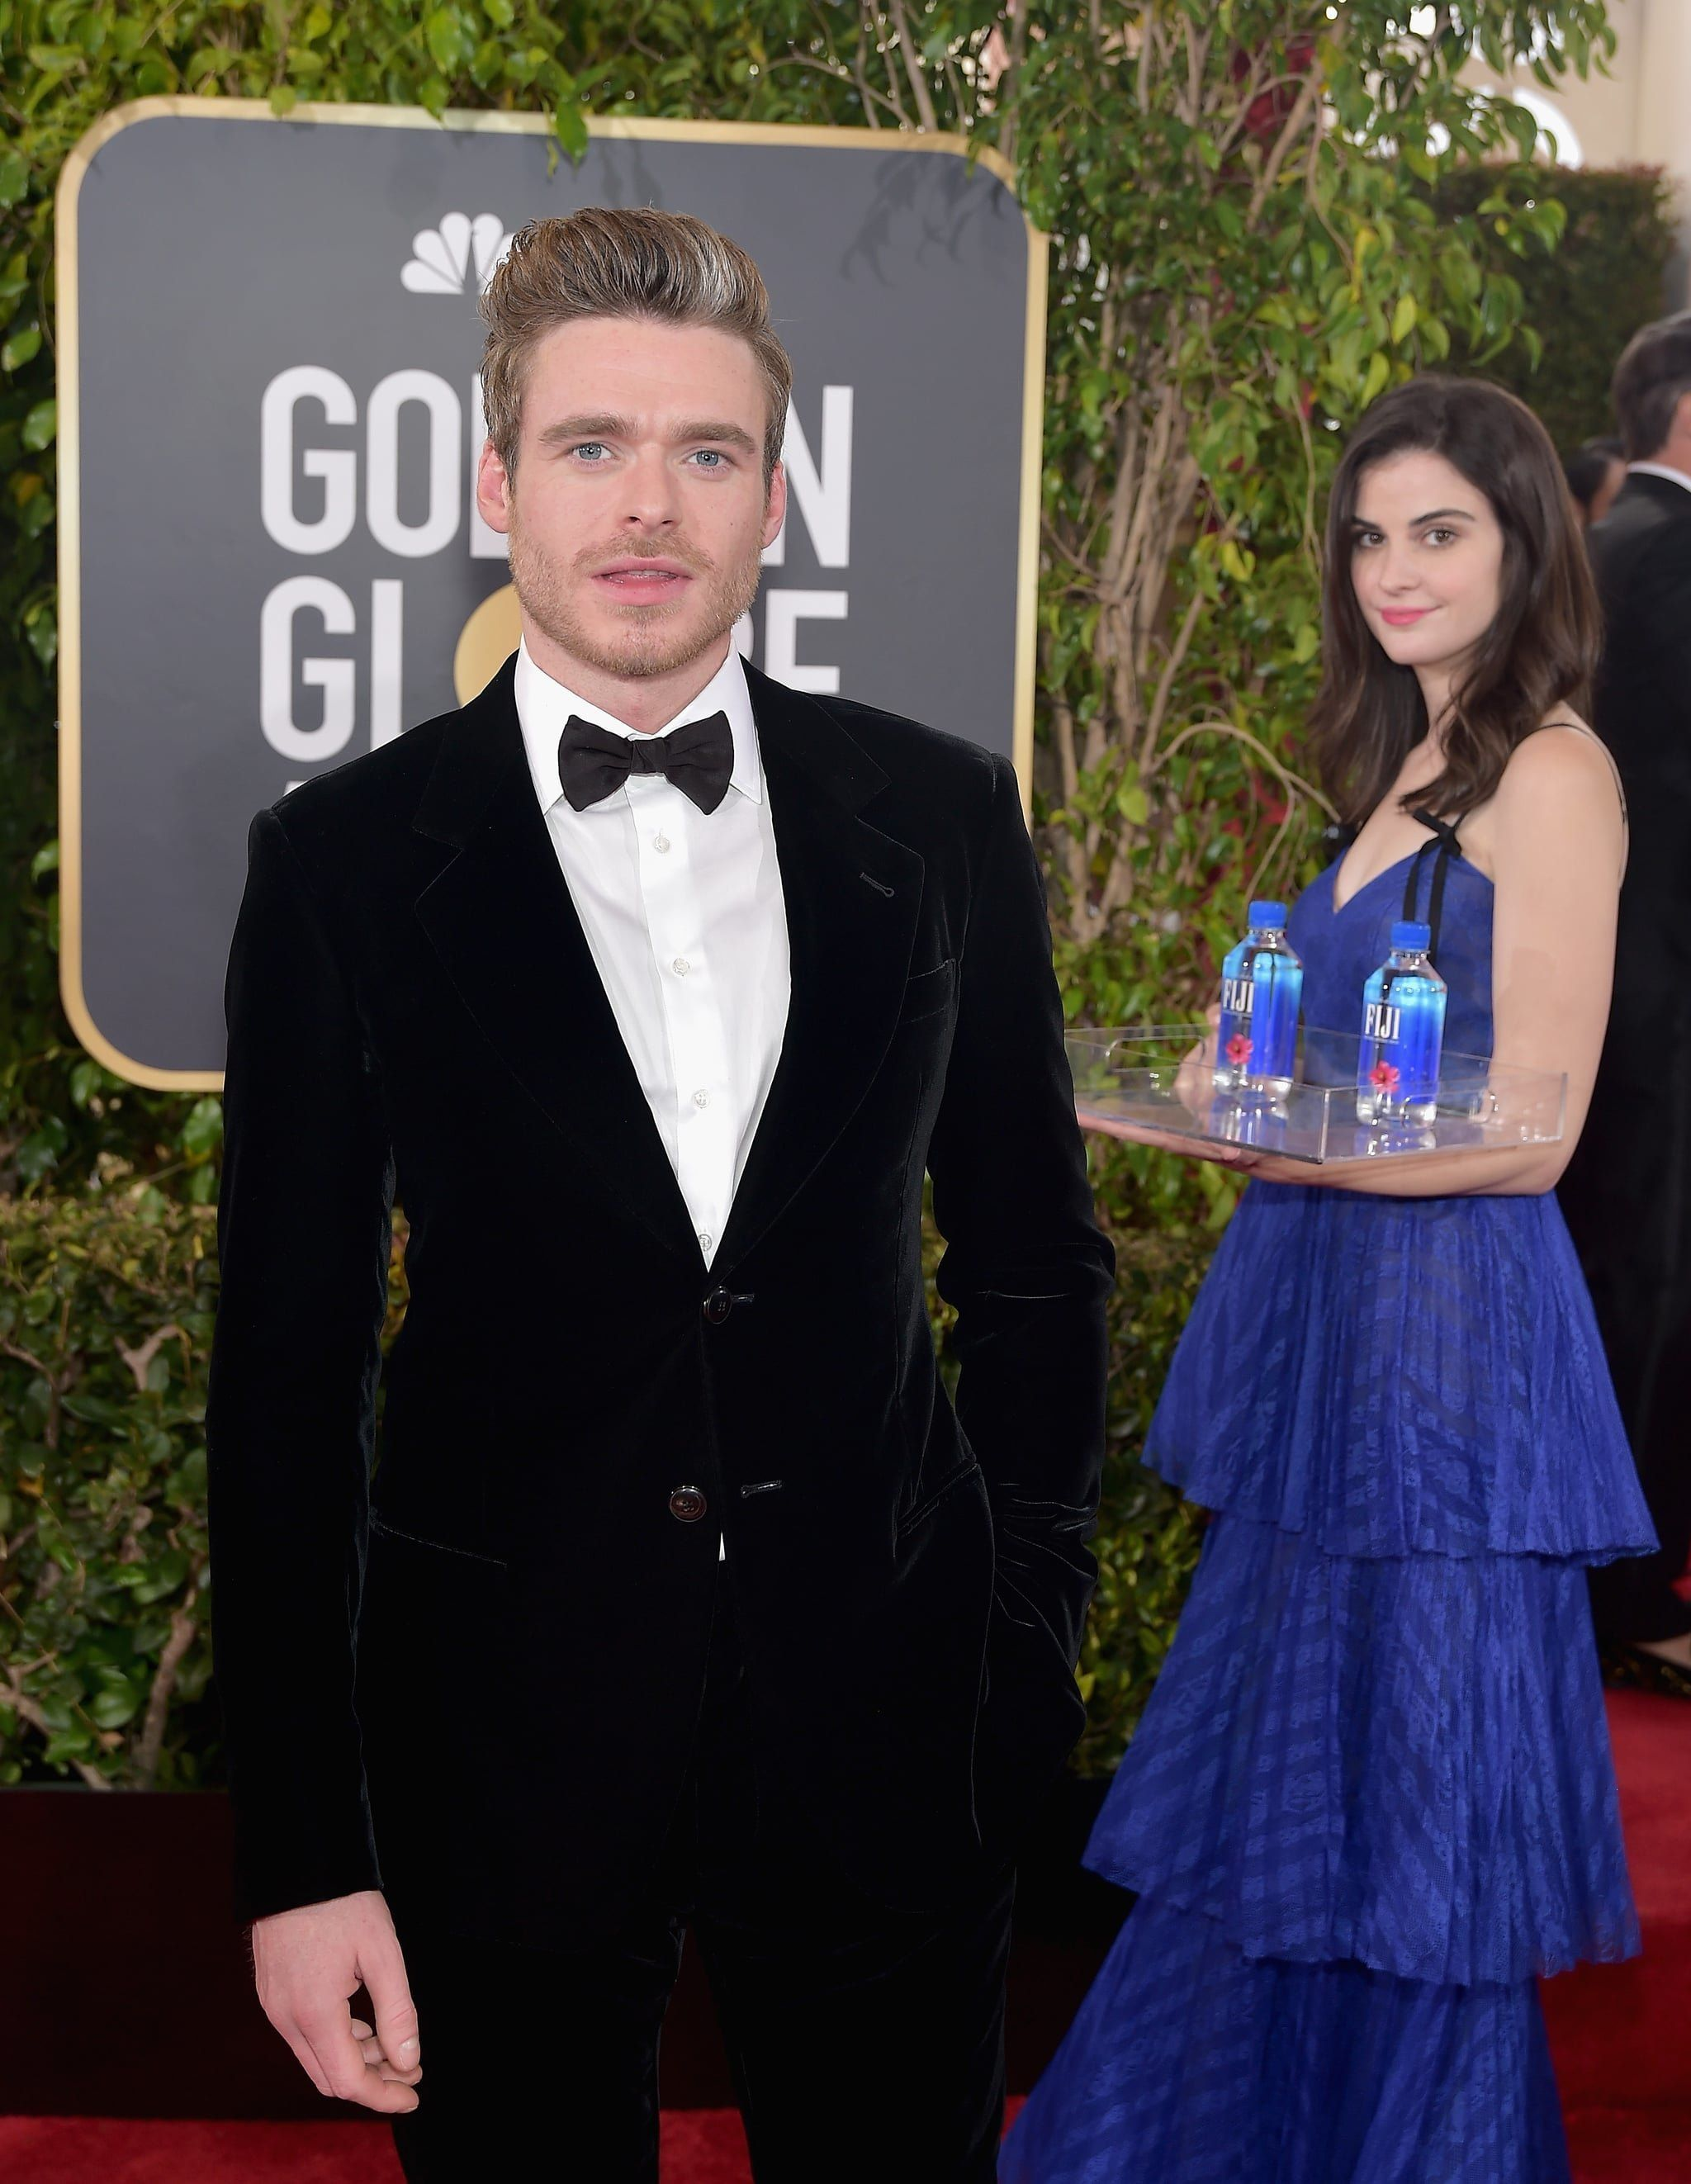 Model Kelleth Cuthbert became known as Fiji Water Girl after her expert photobombing at the Golden Globes...